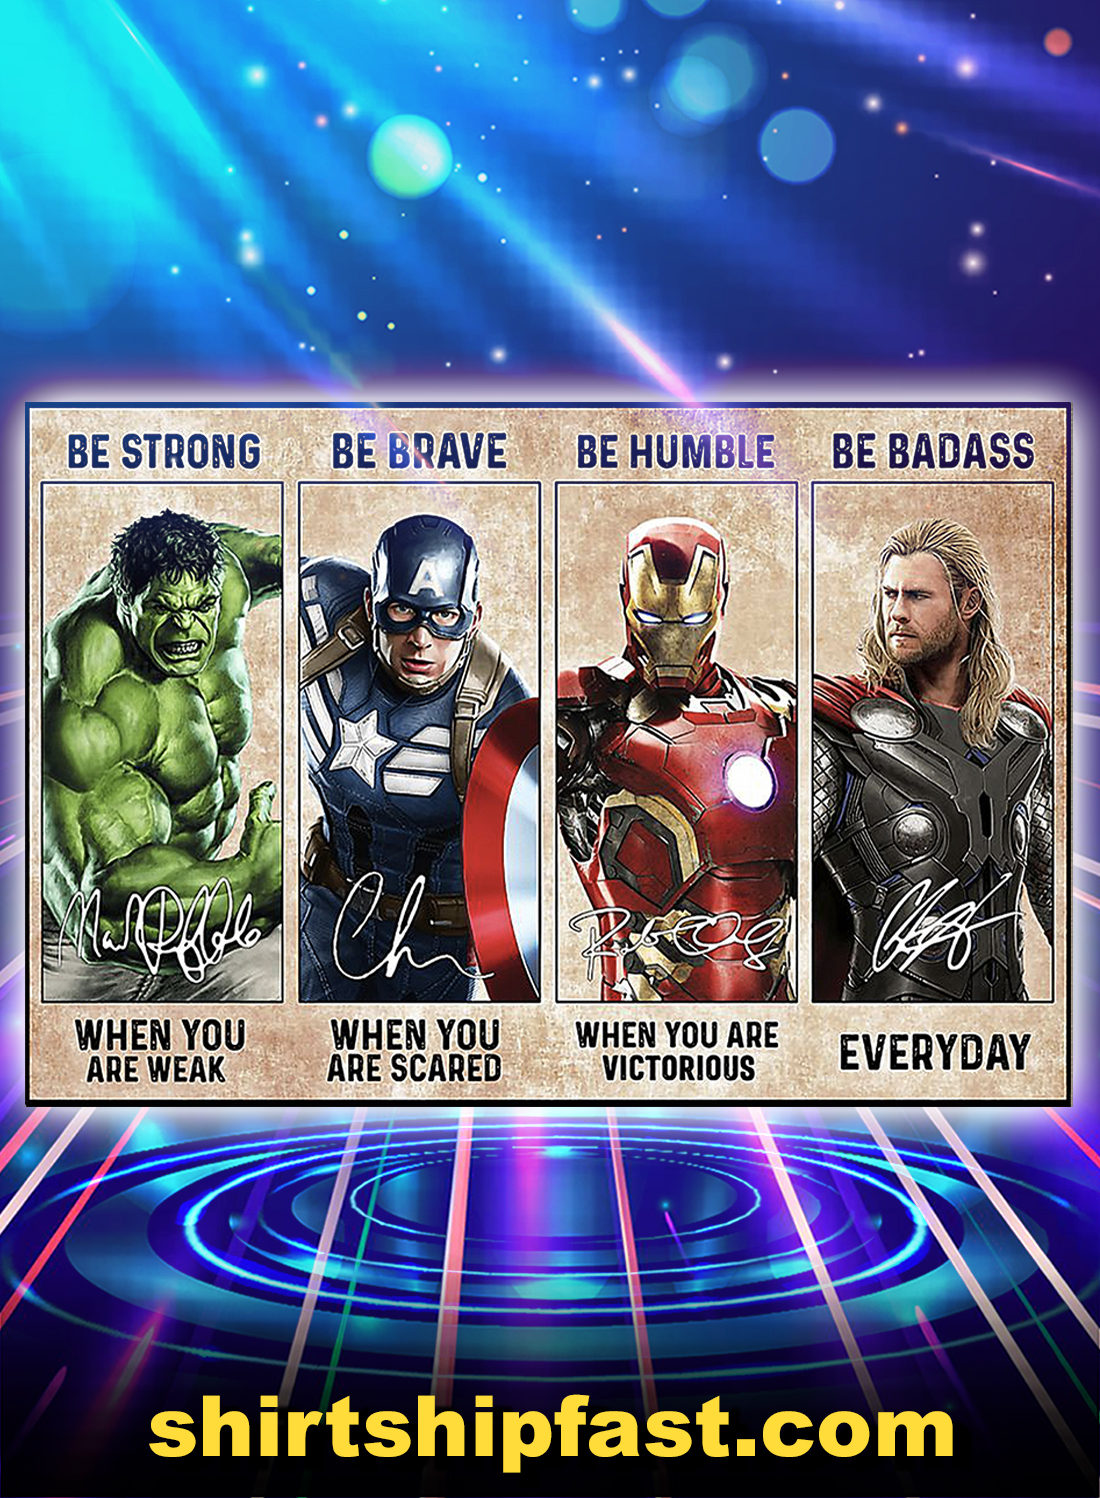 Avengers Marvel Superheroes be strong be brave be humble be badass poster